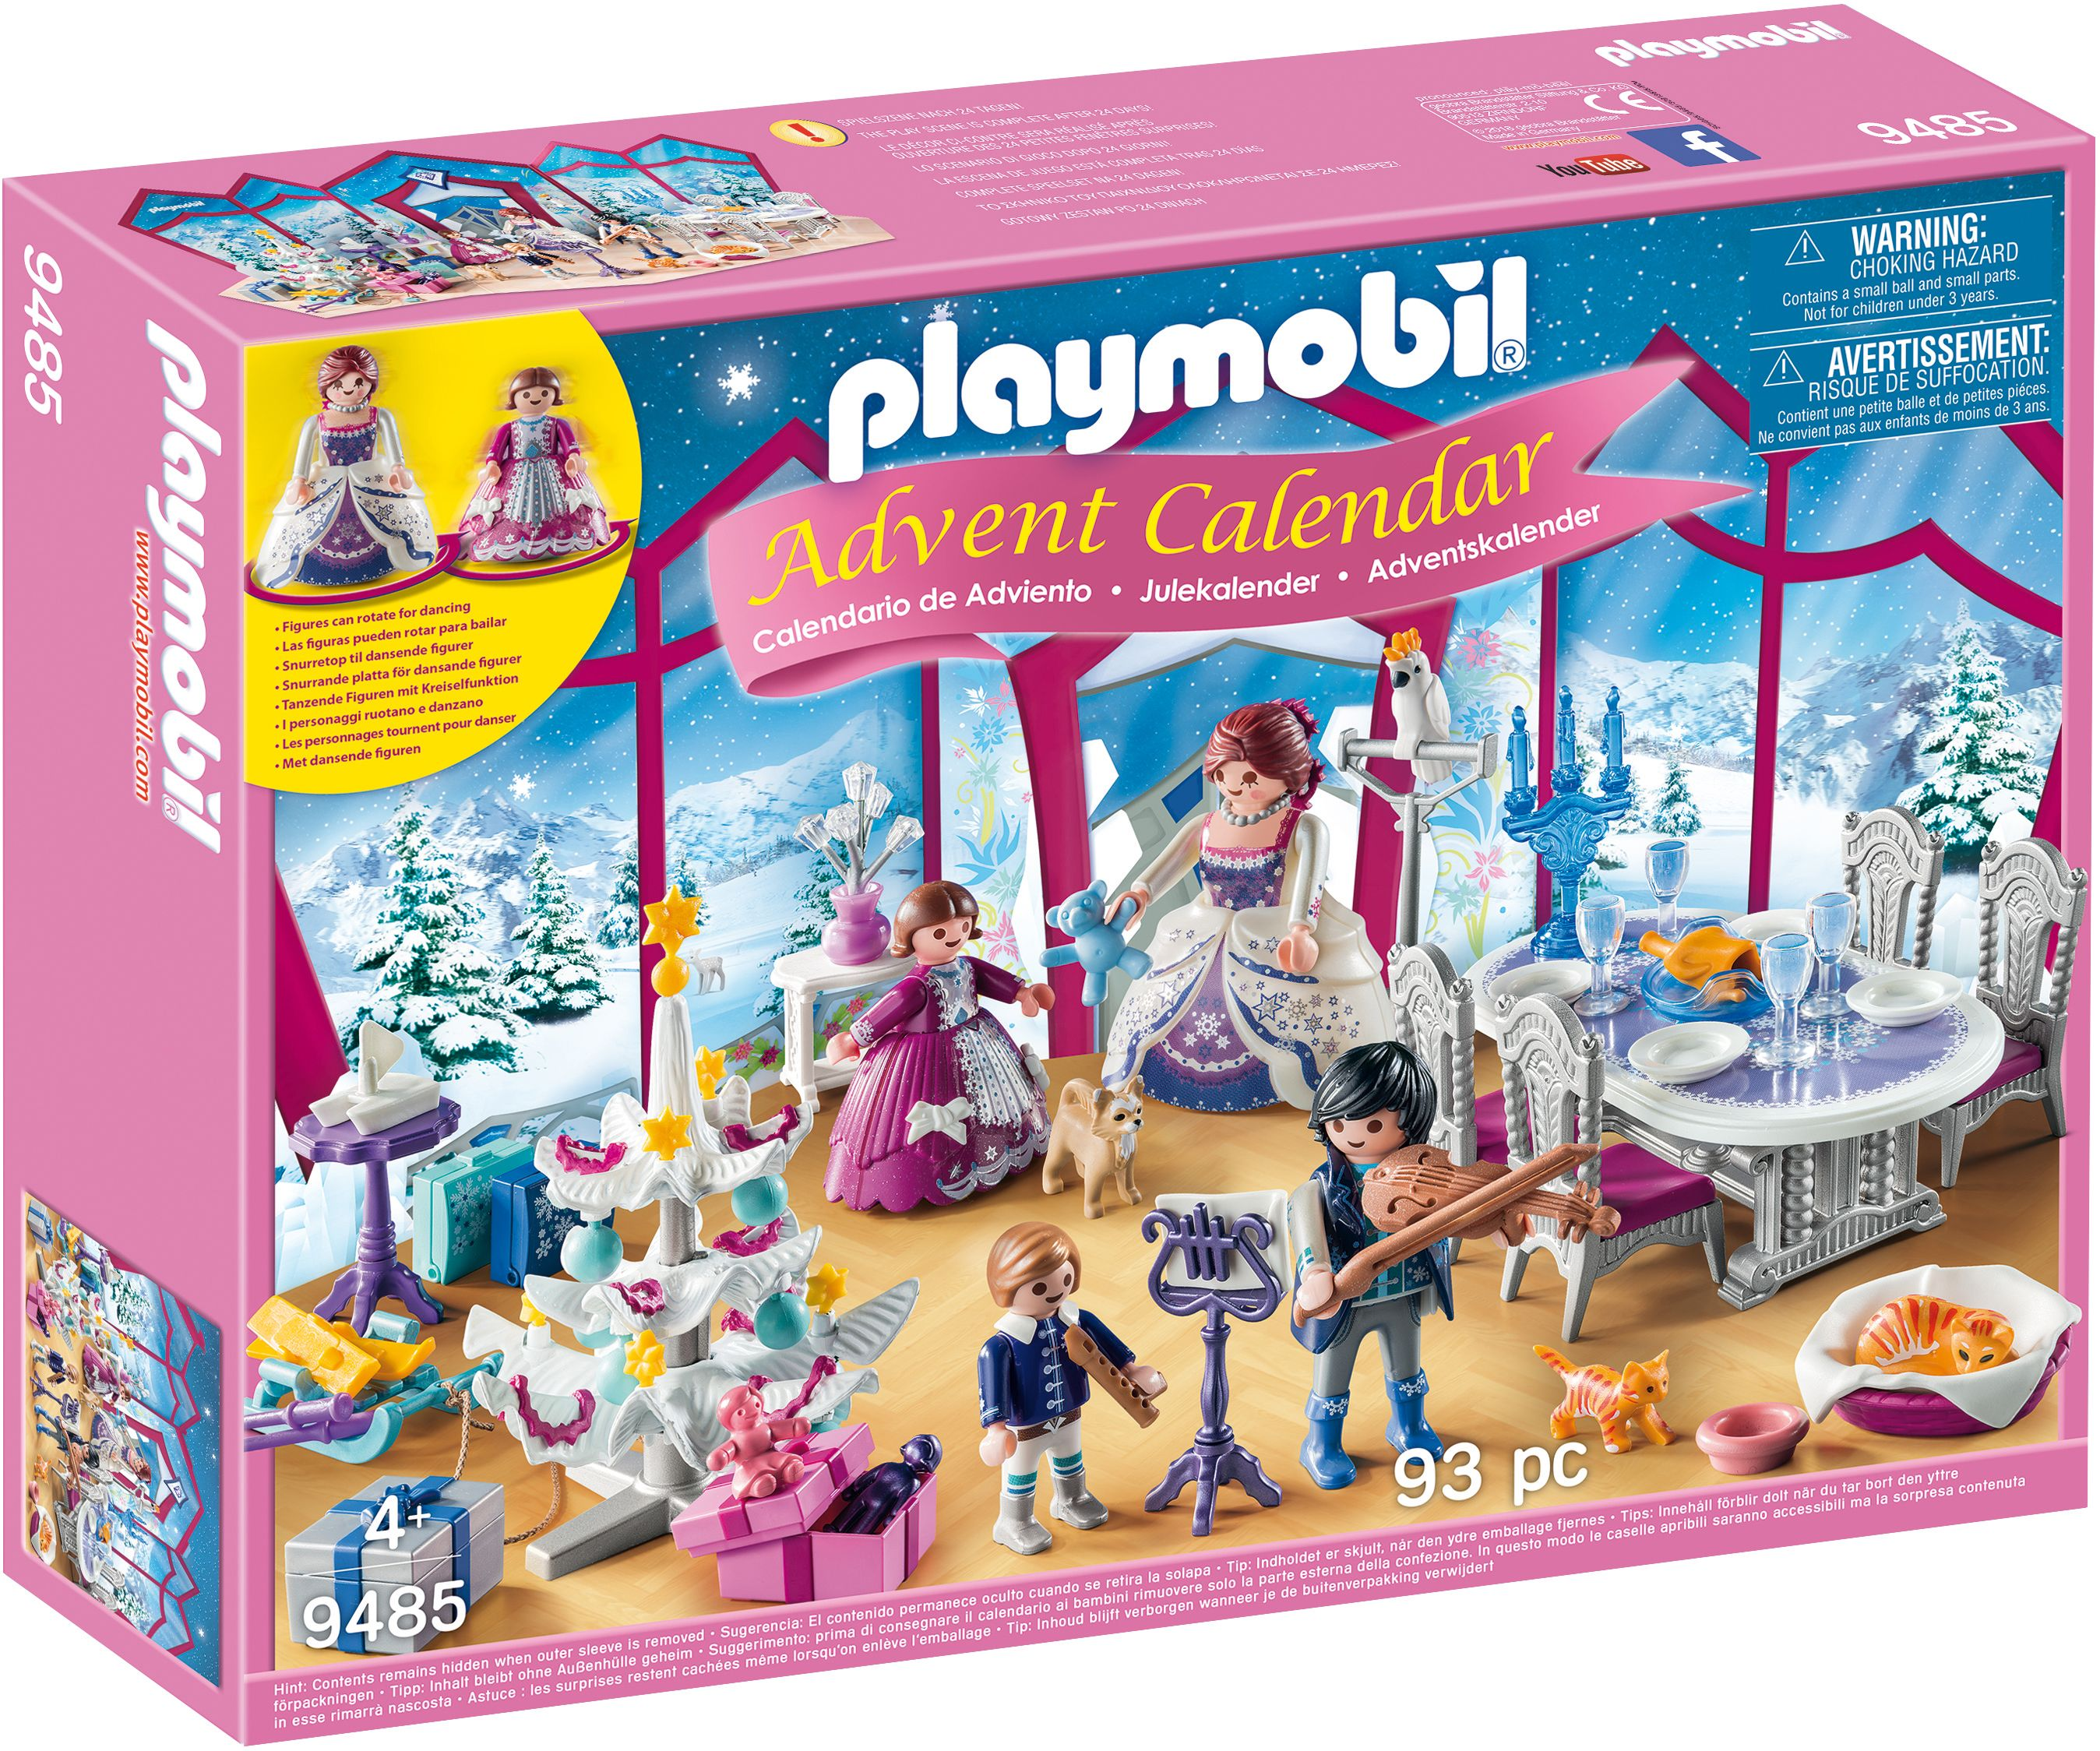 PLAYMOBIL Advent Calendar Chri...